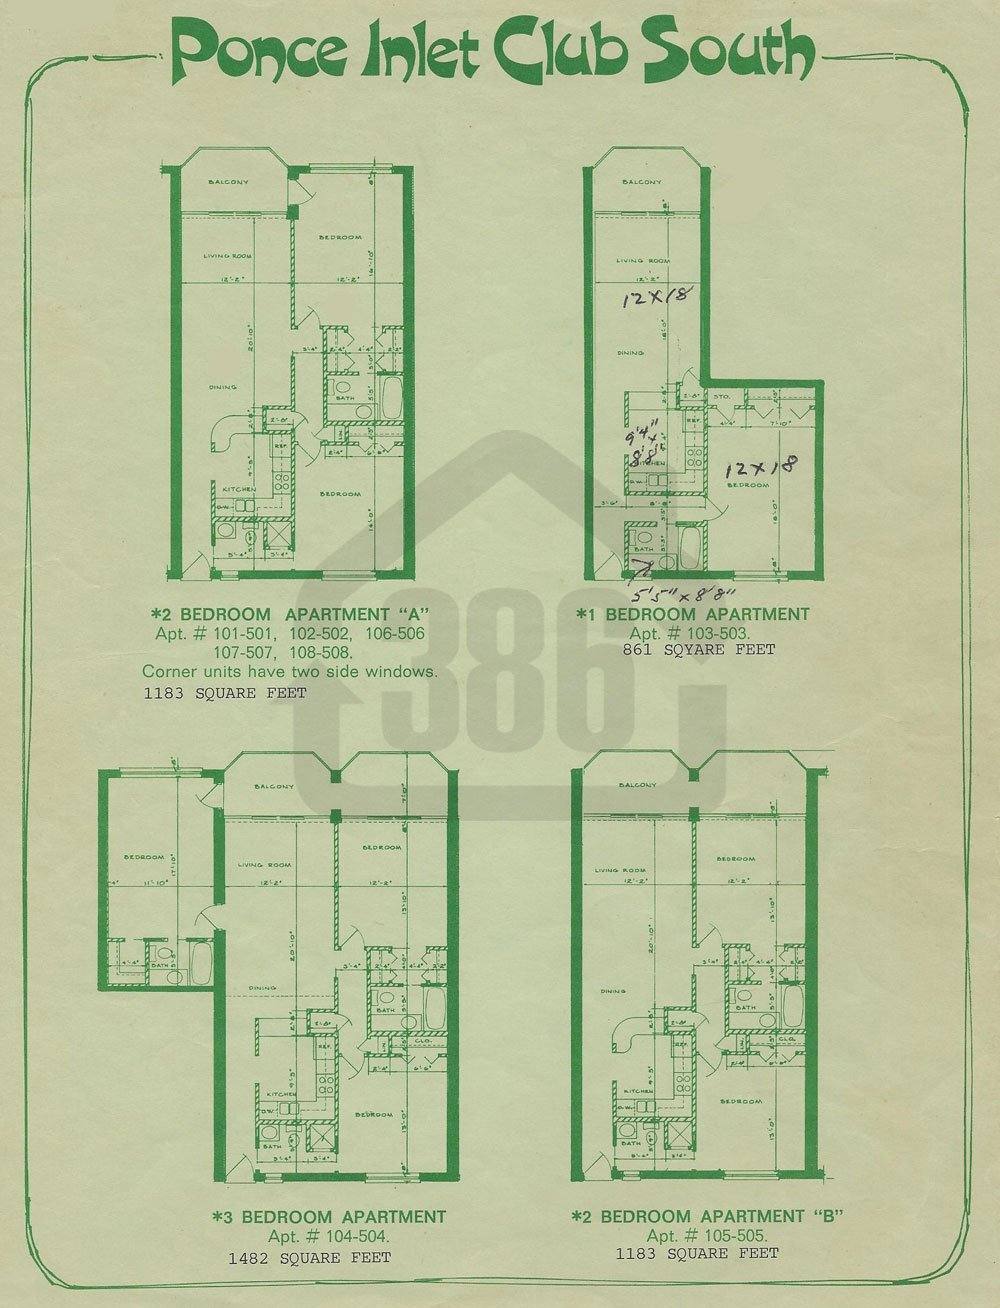 Ponce Inlet Club South Floor Plans